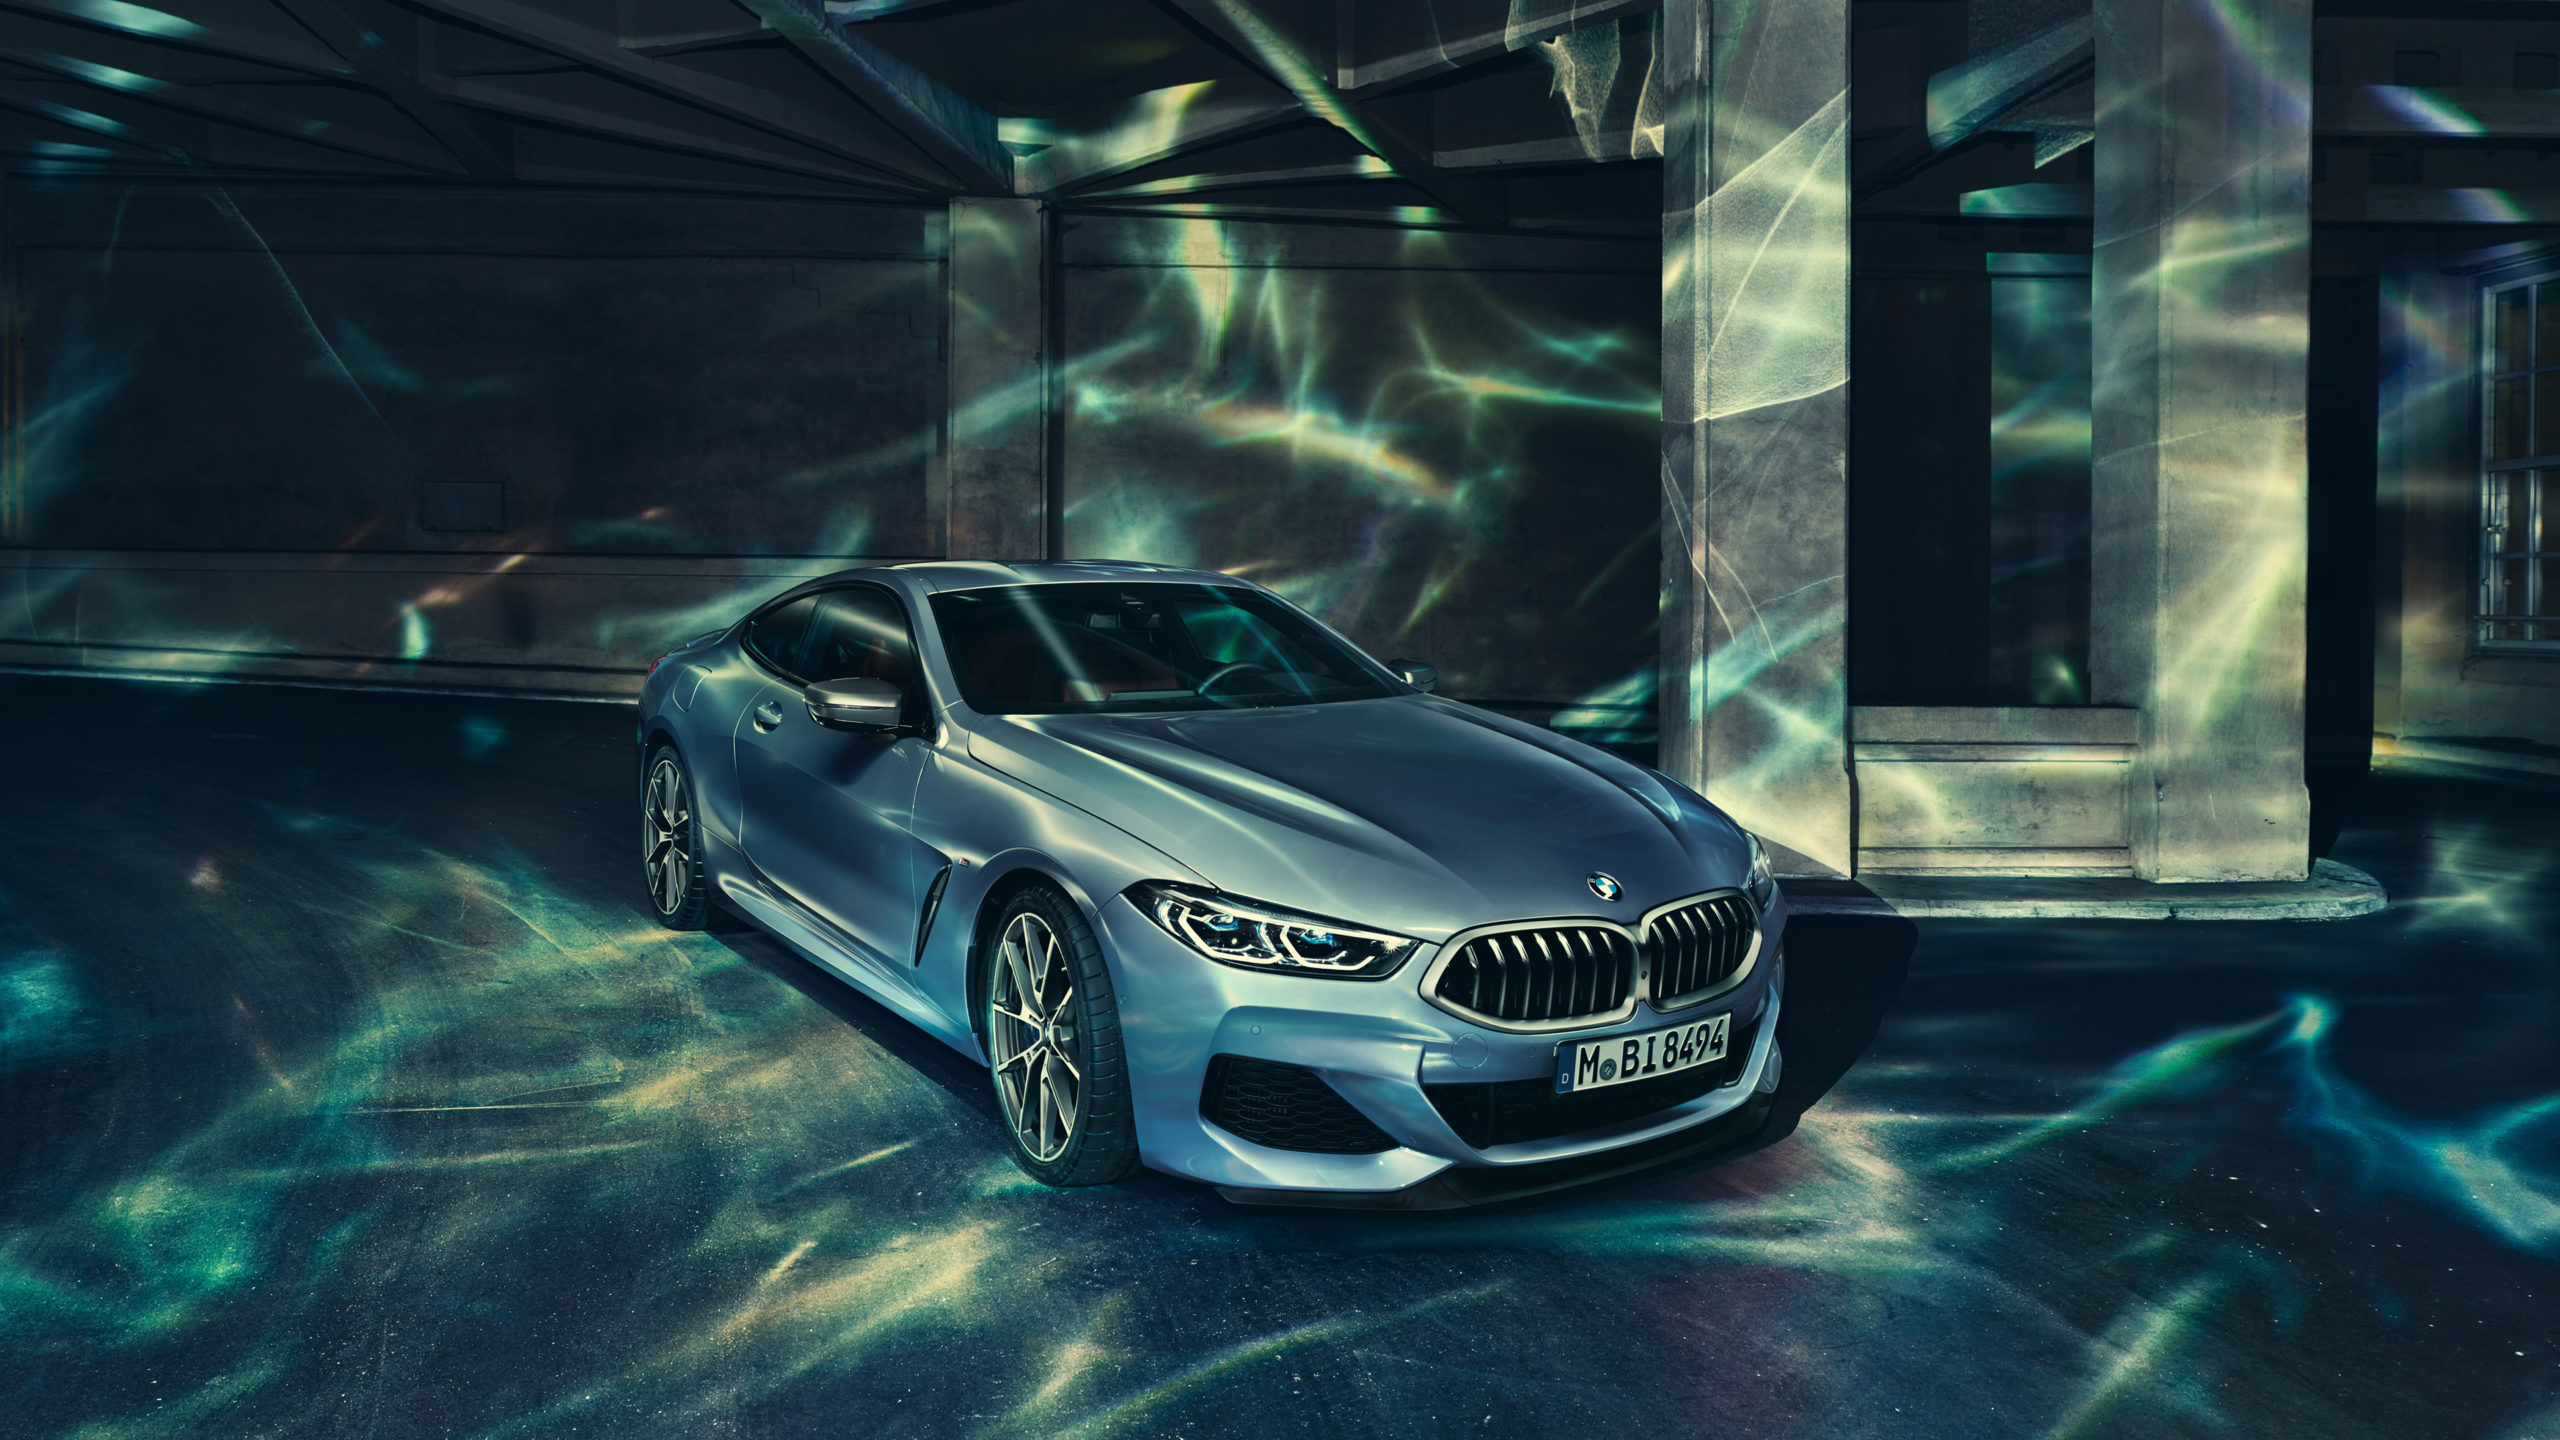 Download Bmw 8 Series And The Lightrig 4K